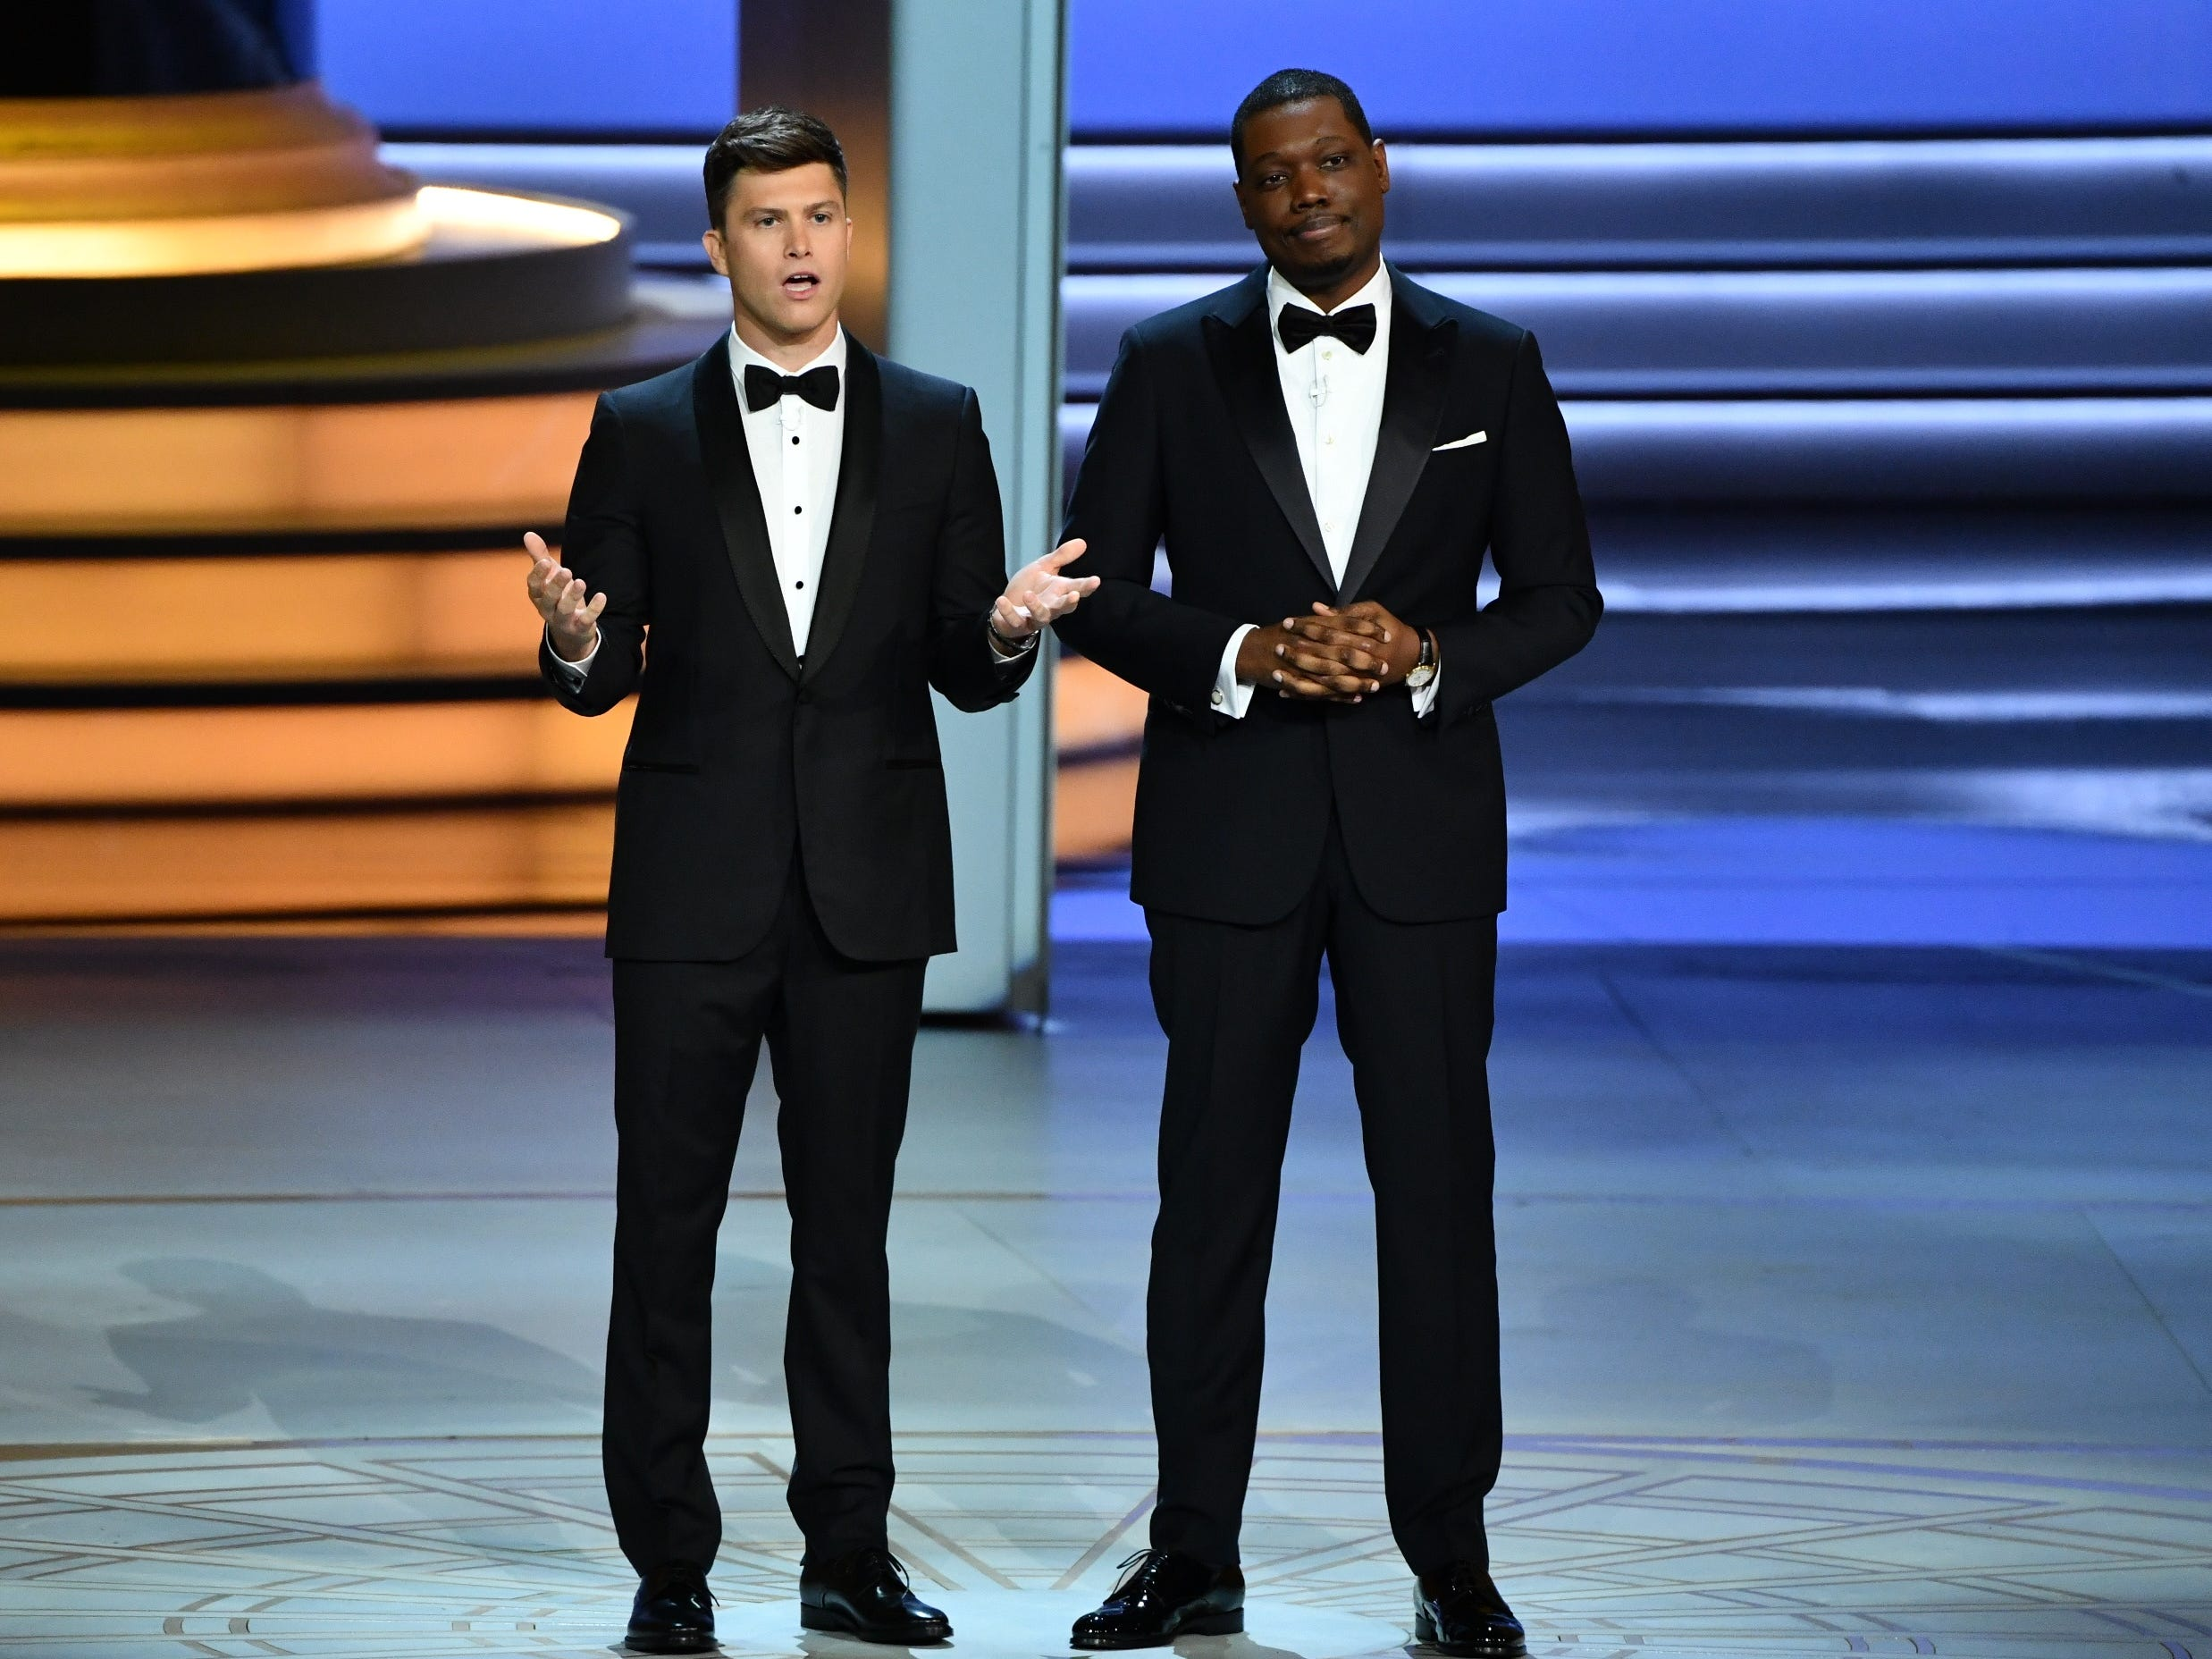 Colin Jost and Michael Che deliver the opening monologue.